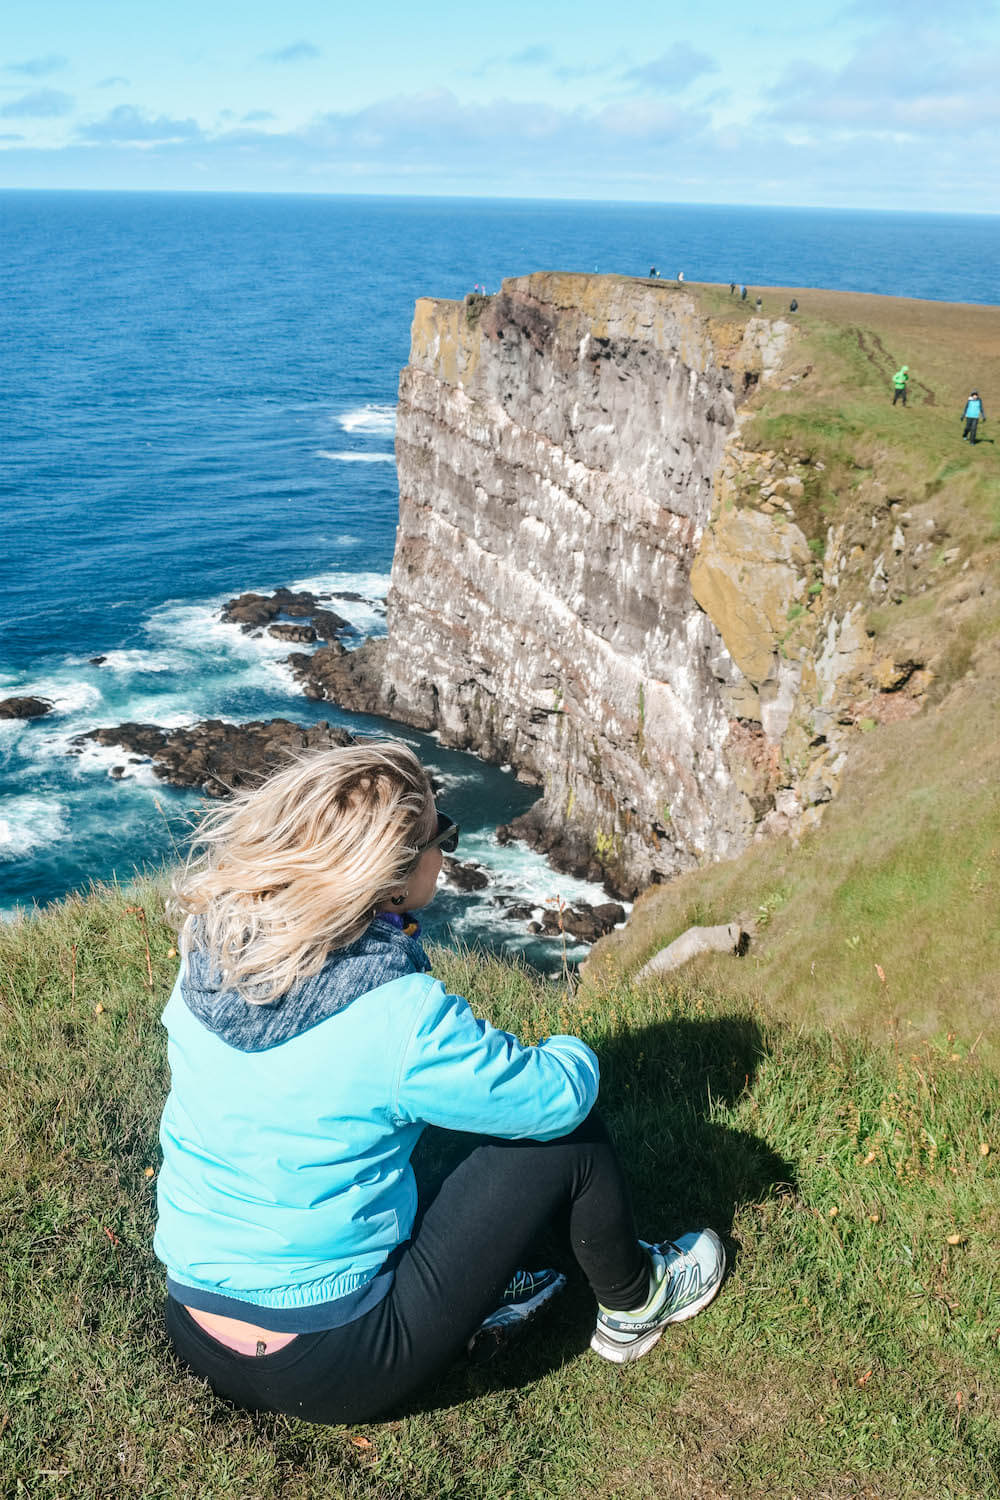 Admiring the huge cliffs of Látrabjarg, trying to spot some puffins